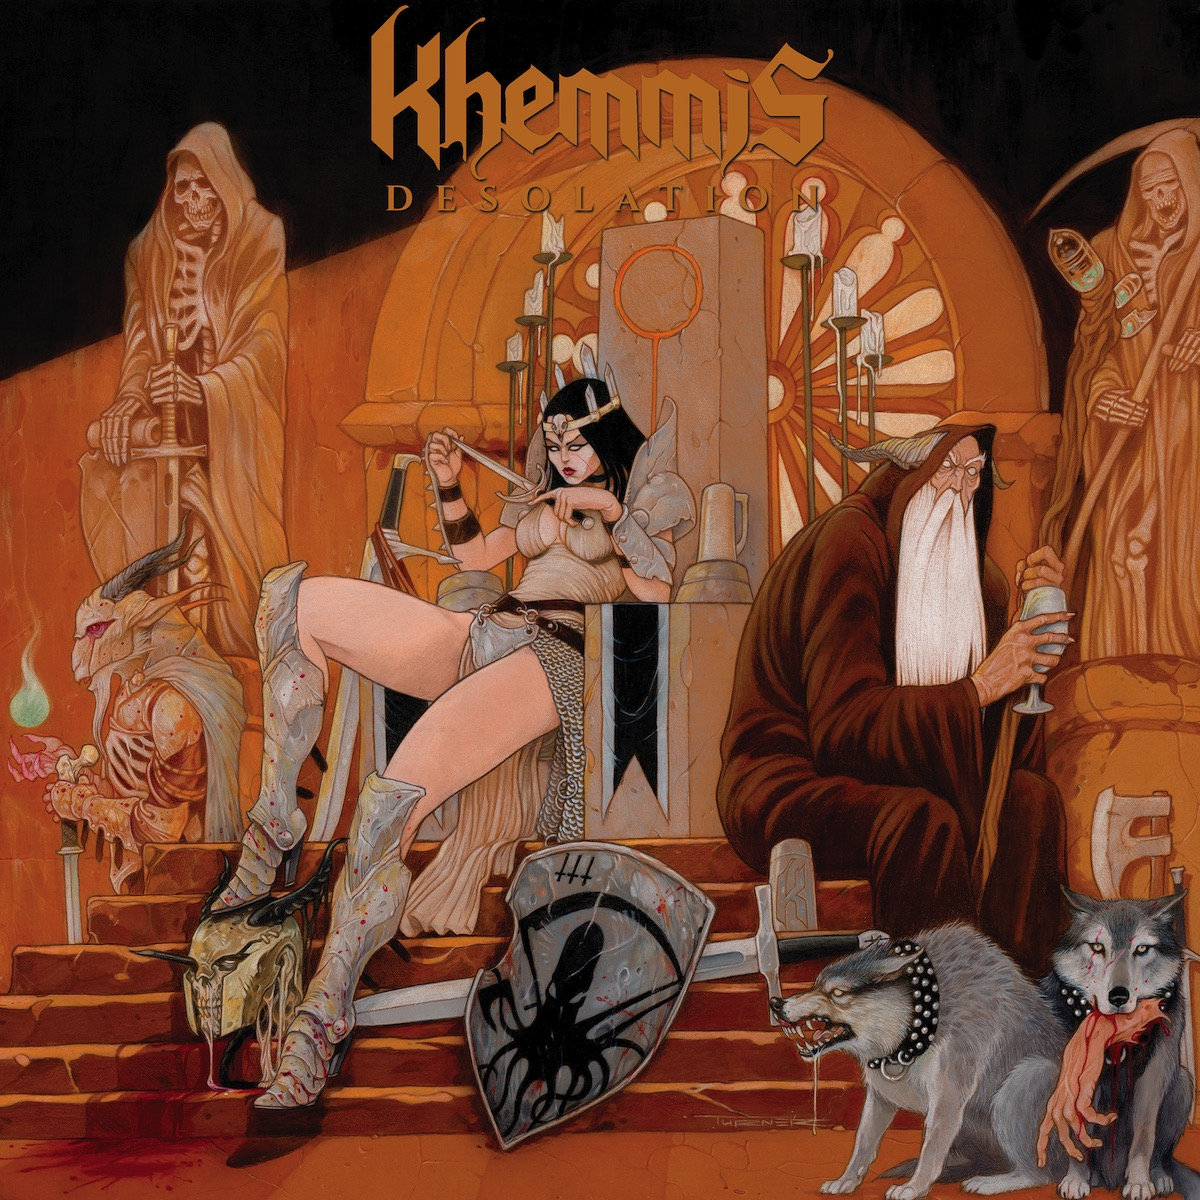 """Album Review: Desolation by Khemmis - And we're back for some good 'ol fashion heavy metal this week, kids! When all else fails, you can always fall back on heavy metal. It's there for you. From Black Sabbath and Iron Maiden to Slayer and Cannibal Corpse and all the new and little obscure bands in between that we love. It's never going anywhere. As much as we all love the classic stuff, I feel its still vital that we stay in the loop with """"new"""" metal bands and keep supporting the community that'll never die.. 'cuz thats what we do. All for one and one for all. It's only rock n roll. You know what I mean. So, when a new band like Khemmis comes along with a critically-acclaimed third record, Desolation, off the heels of their excellent second record, Hunted; I am beyond all ears. Does it hold up to the success and awesomeness of their previous and live up to the hype? Yes and no, I say. Dig this… As I mentioned above, I really loved Khemmis second record, Hunted. I thought it was a huge improvement from their """"not bad but nothing really special"""" first release, Absolution. But, that's about as far as my fandom ran for them. I thought it was a really good record, listened to it a few times, it was intriguing, catchy, and heavy and atmospheric enough to keep me excited about it for a while… and thats pretty much it. I put it down and seldom revisited for no good reason other than just was exploring new music or going back and jamming to the classics. So, I more or less forgot about them. Therefore, this new record, Desolation, slapped me in the face like fat bag of wolf bones and bloody swords. Damn! How did I forget about Khemmis!? The Colorado doom/stoner/epic metal warriors have returned for another around and I found myself quite unprepared for it. So what did I do? Suited up with a bunch of ancient armor and went on a trek deep into the Pittsburgh wilderness and started slaying imaginary creatures? Wait, what? No! I totally did NOT. Ever. I actually just went back a"""